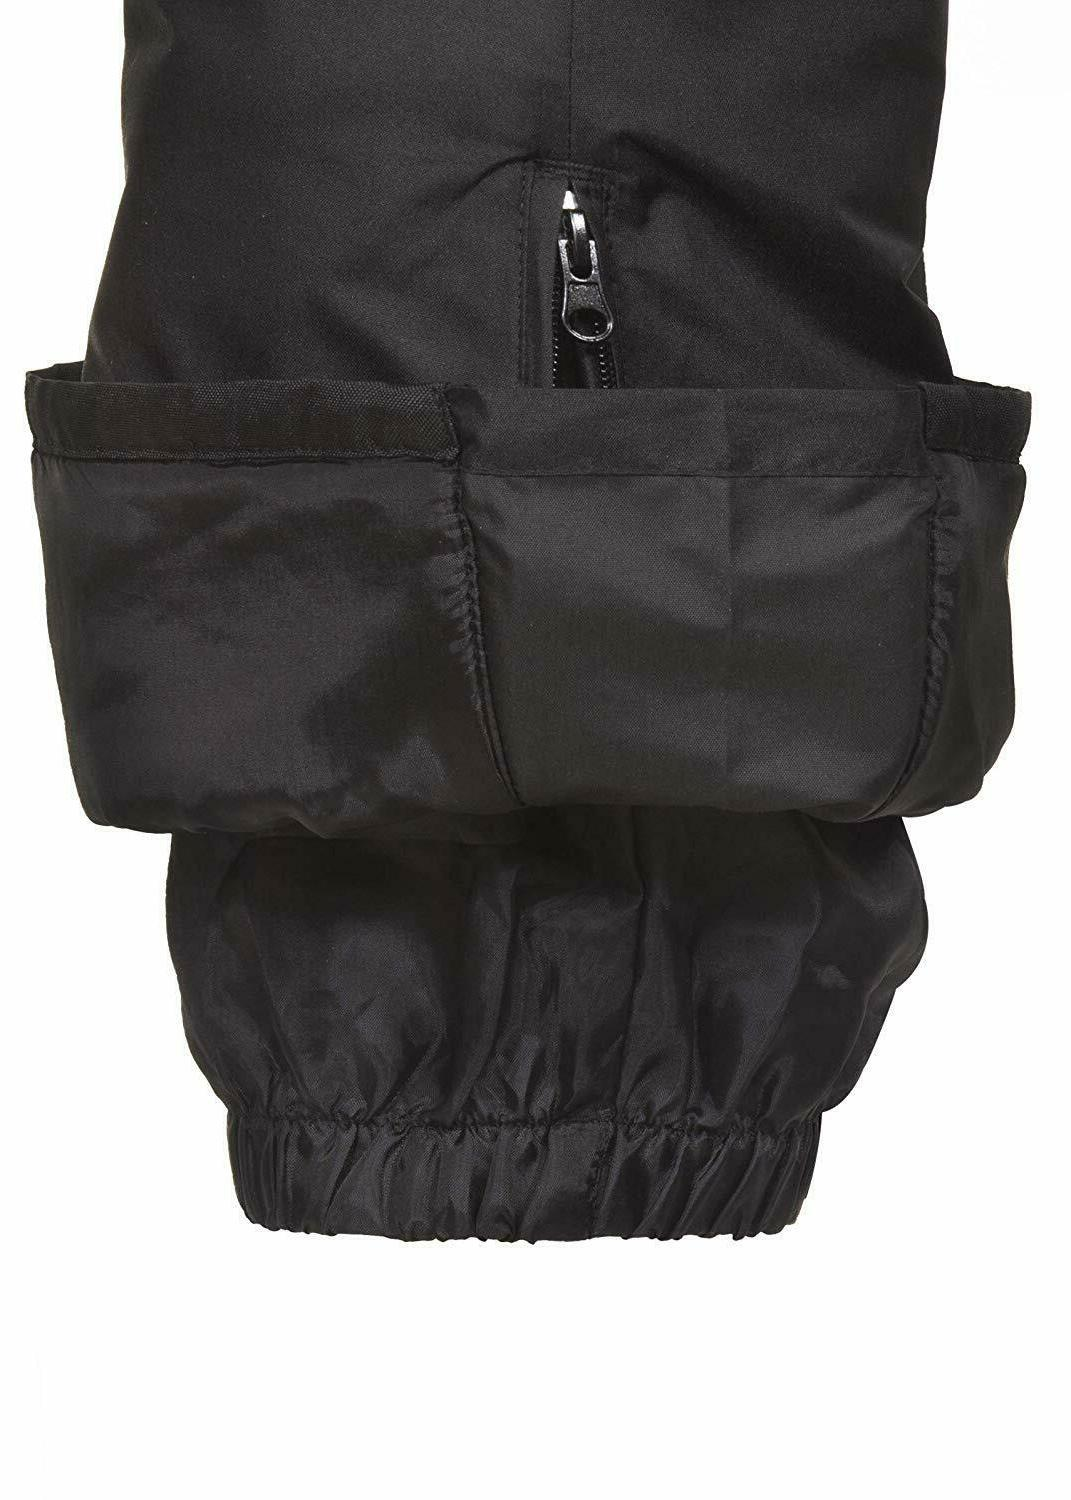 ARCTIC QUEST - Insulated Pants Black -- SIZE